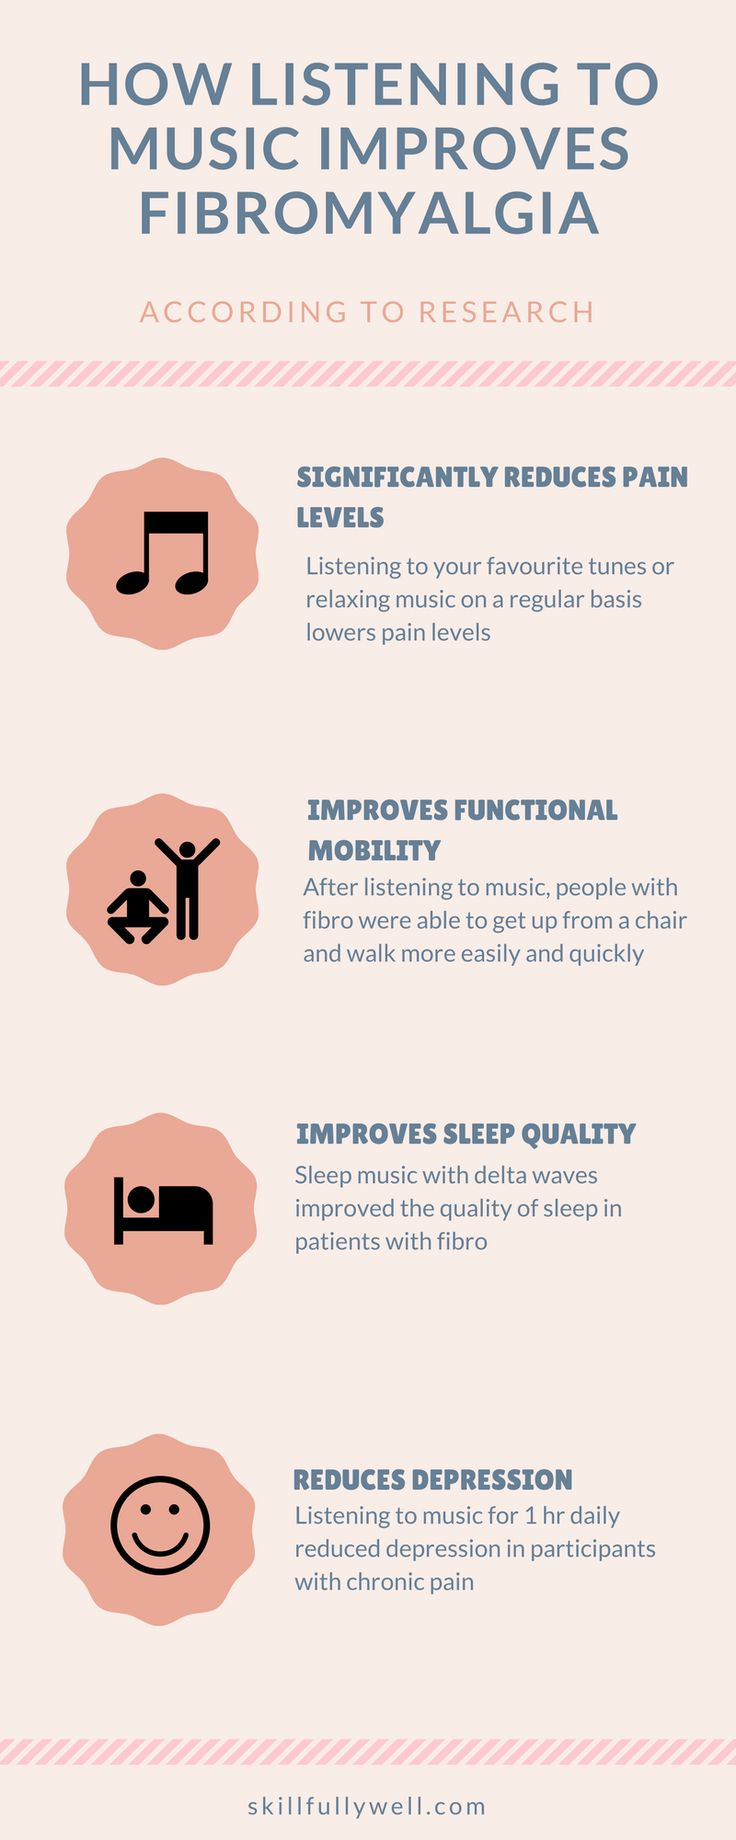 Learn about how music improves fibro symptoms, including pain, mobility, depression and sleep quality.